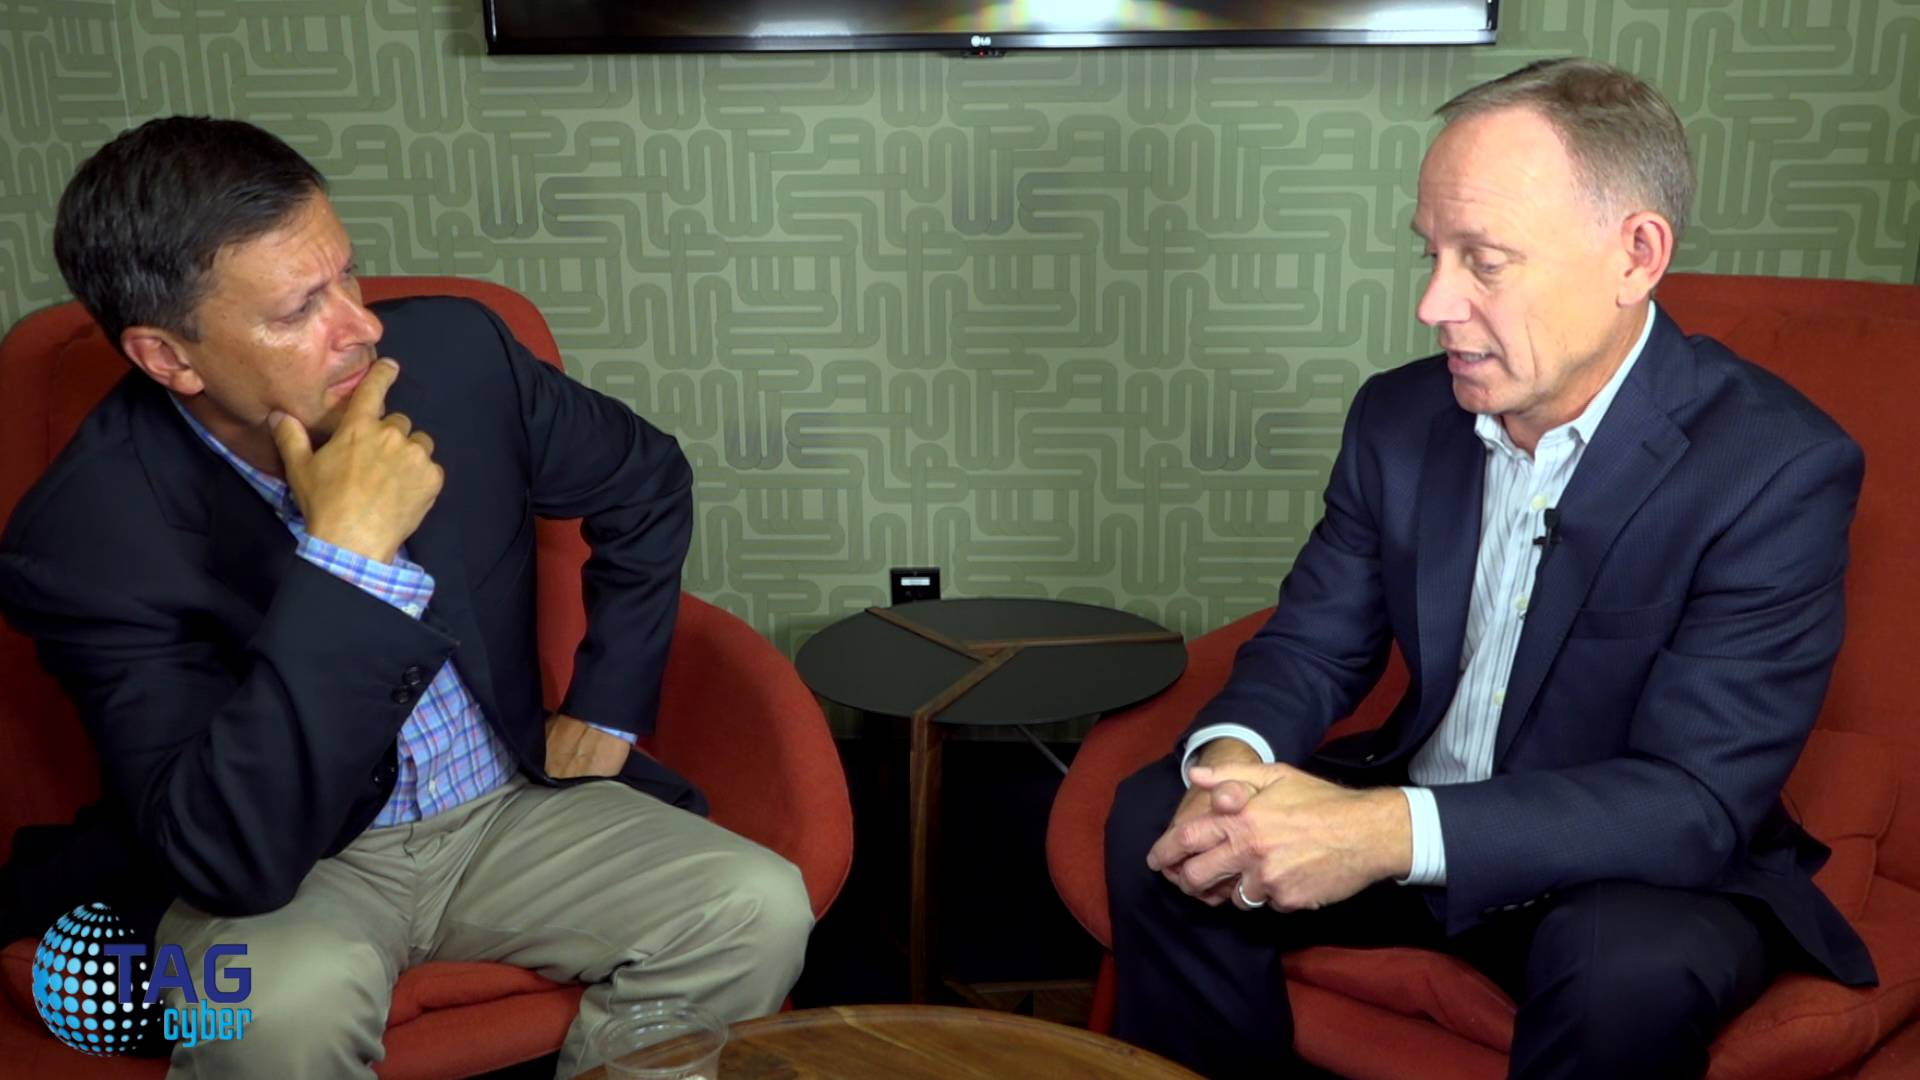 Tag Cyber Interview: Ed Amoroso, former CISO of AT&T & Alan Naumann, Contrast Security CEO